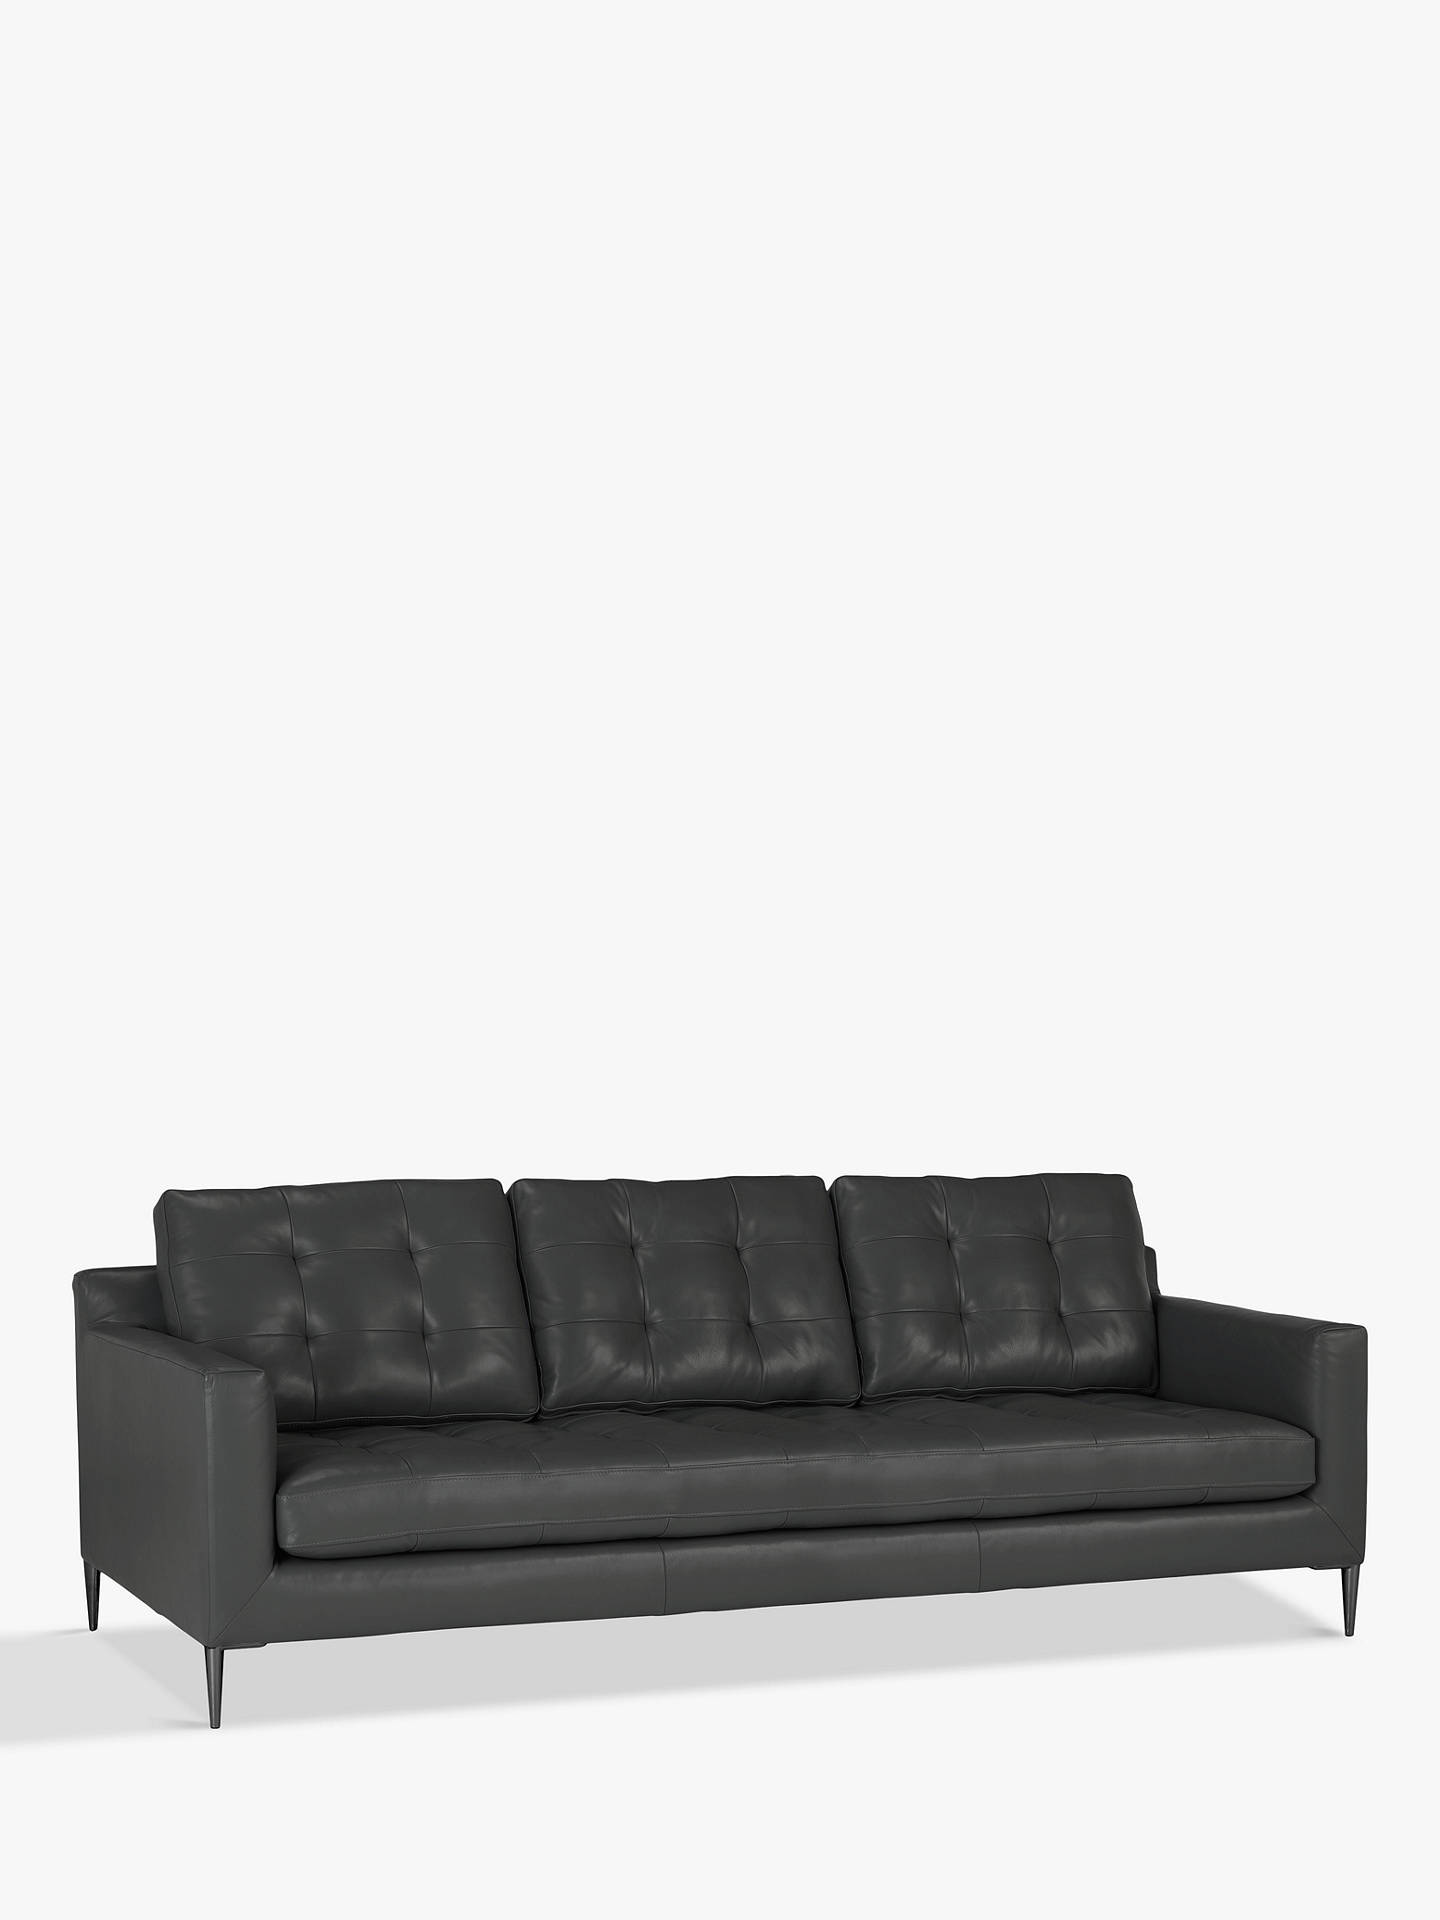 John Lewis & Partners Draper Grand 4 Seater Leather Sofa, Metal Leg,  Winchester Anthracite